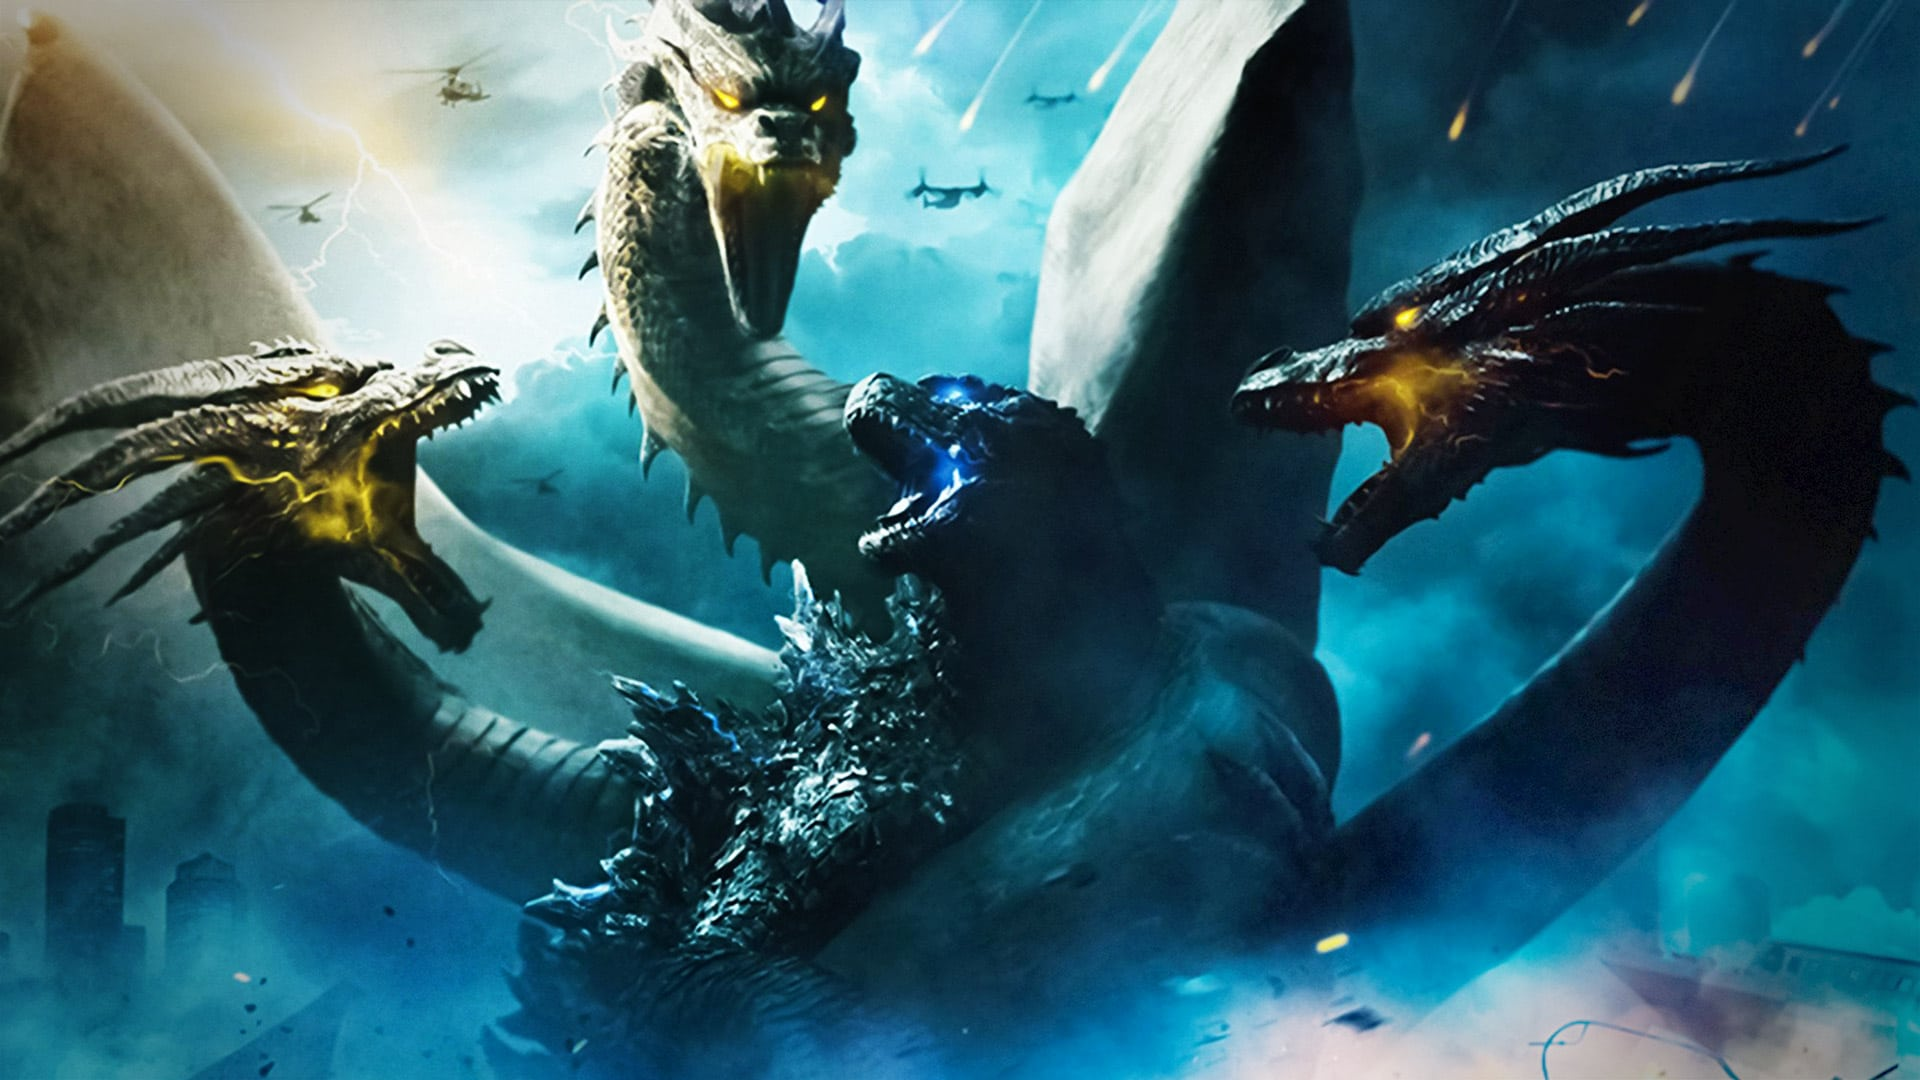 Godzilla vs Kong Planned Release Date, Cast, storyline, and More